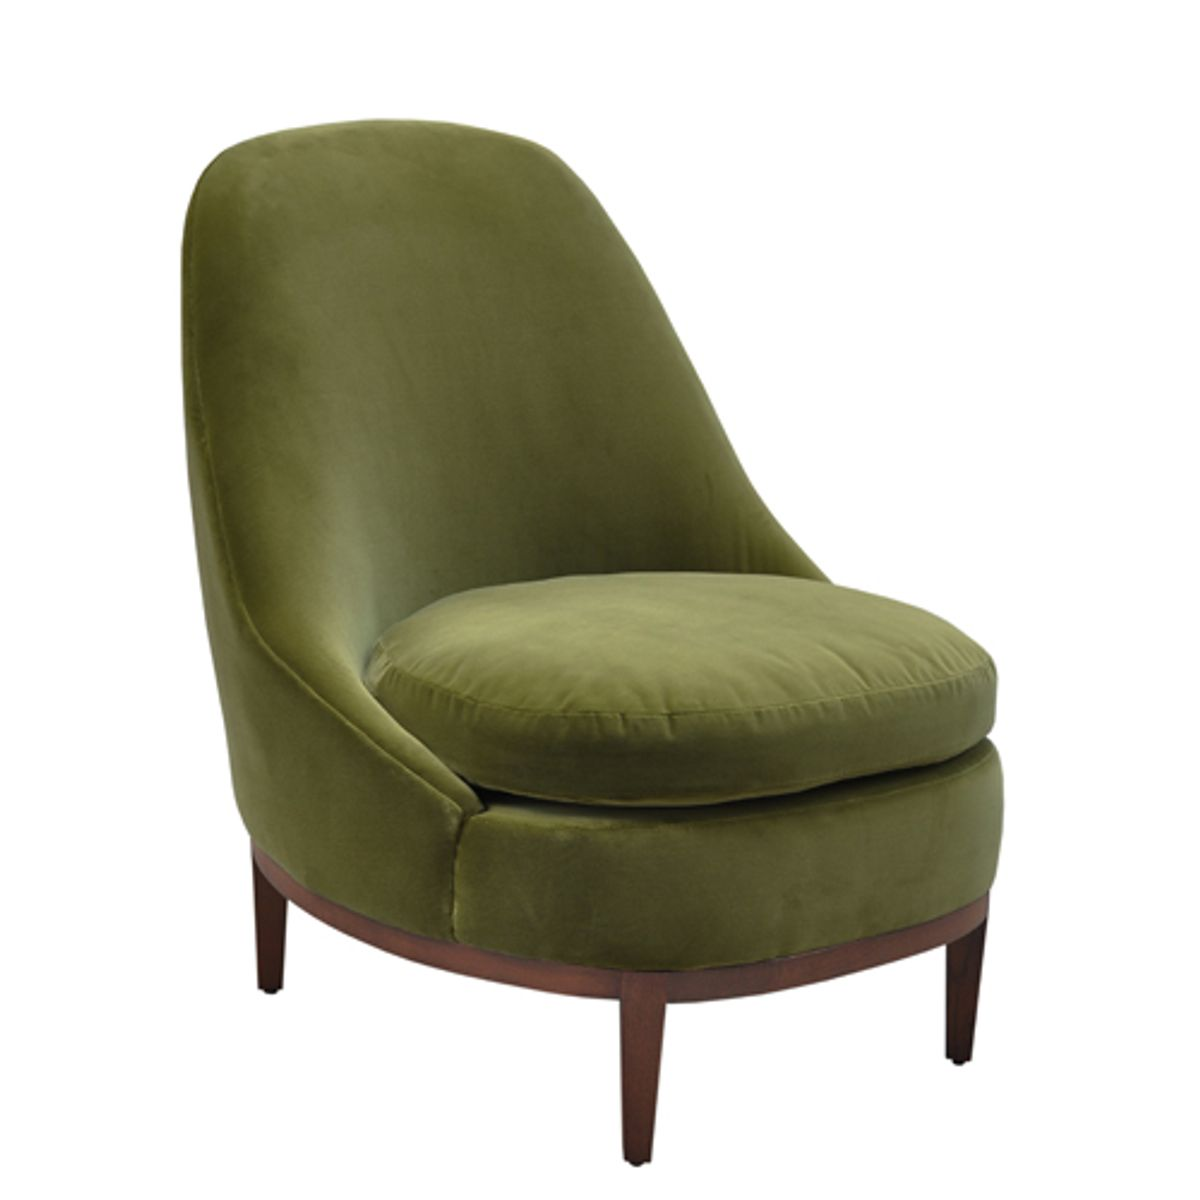 fauteuil en velours de coton bourbon vert empire decoclico. Black Bedroom Furniture Sets. Home Design Ideas